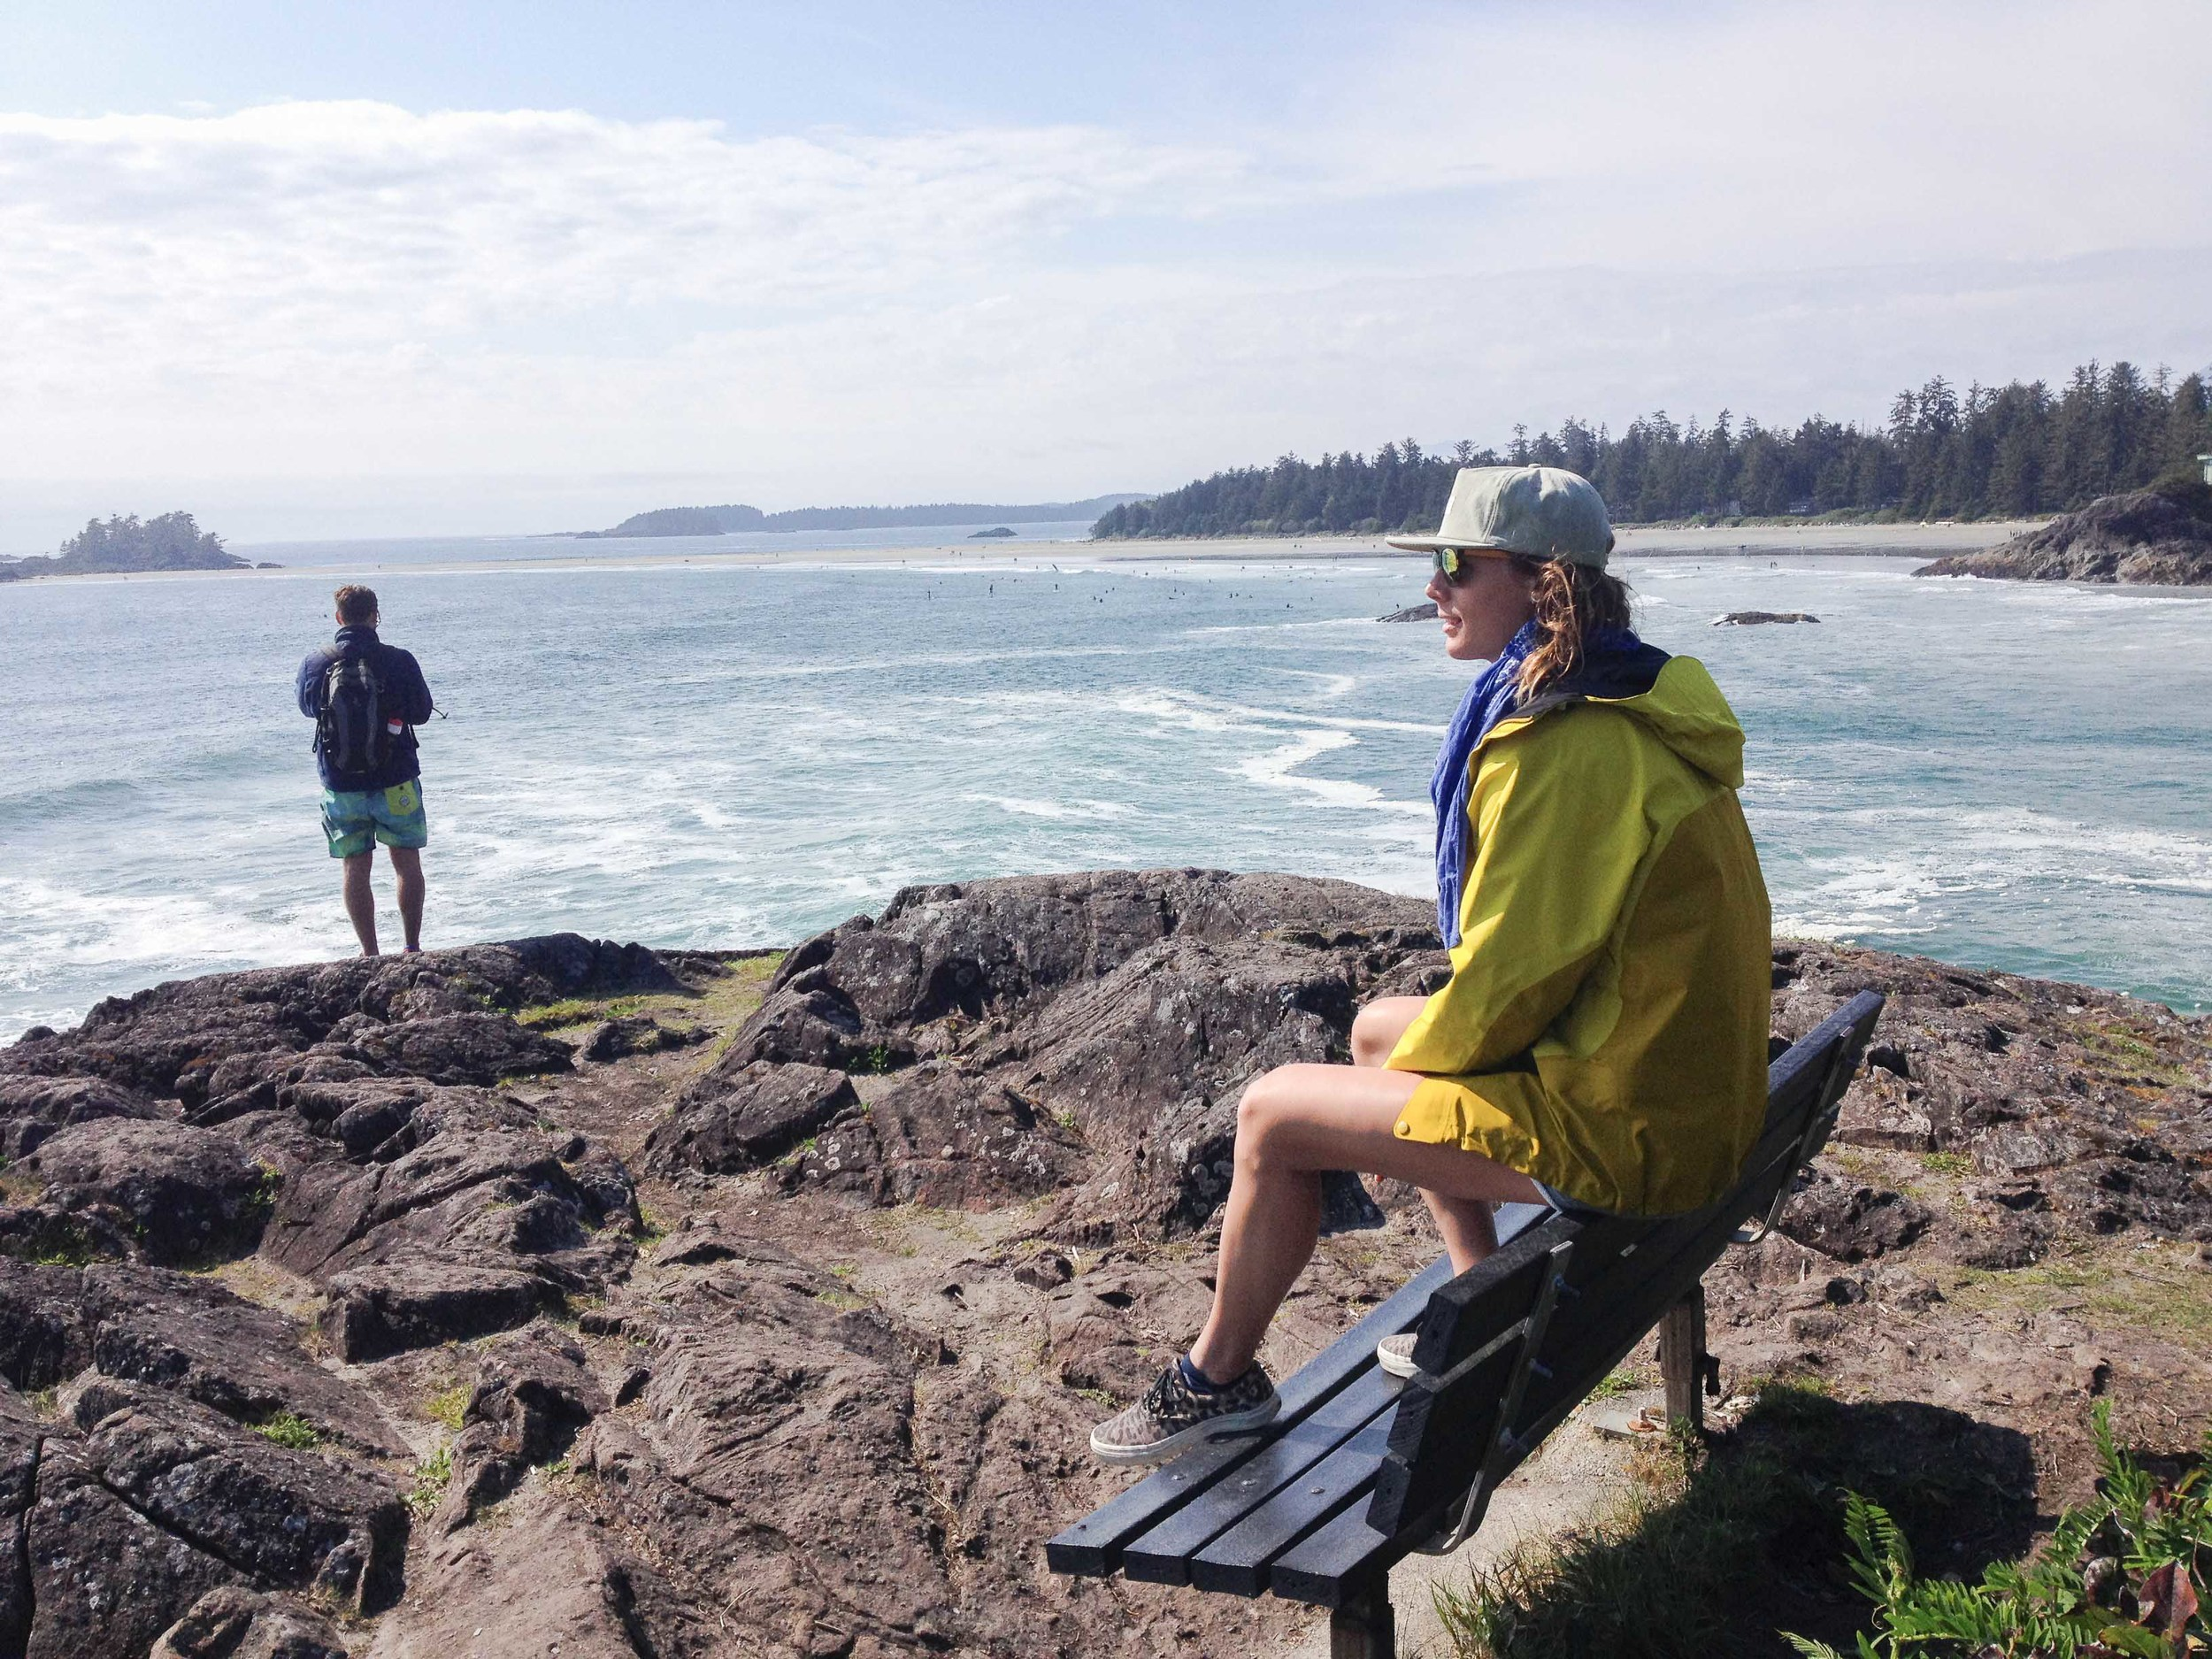 chesterman beach tofino vancouver island surfing weekend guide hello getaway